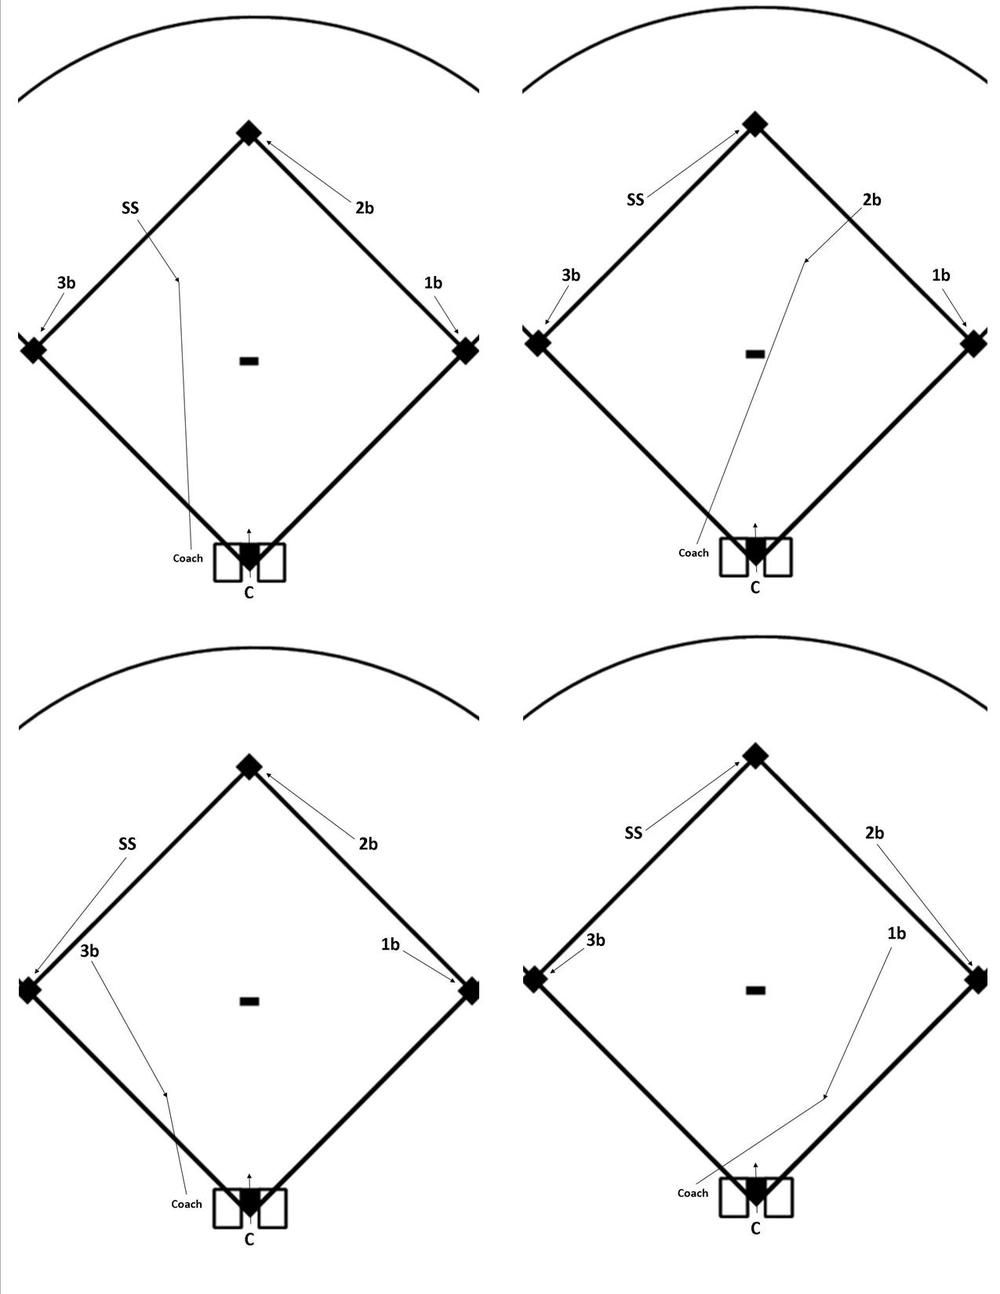 objective: All bases are covered on each play.  Drill is run using a mini-diamond, approximately 20' - 24' square.  When rolling the ball, call out which position the ball is going to, so their is no question of who is getting the ball and the other three infielders can react quickly to covering a base.  When rolling to the corner infielders, only roll the ball about one third of the way to the base, so it is obvious that the base is open and needs to be covered by an infielder who is not playing the ball.